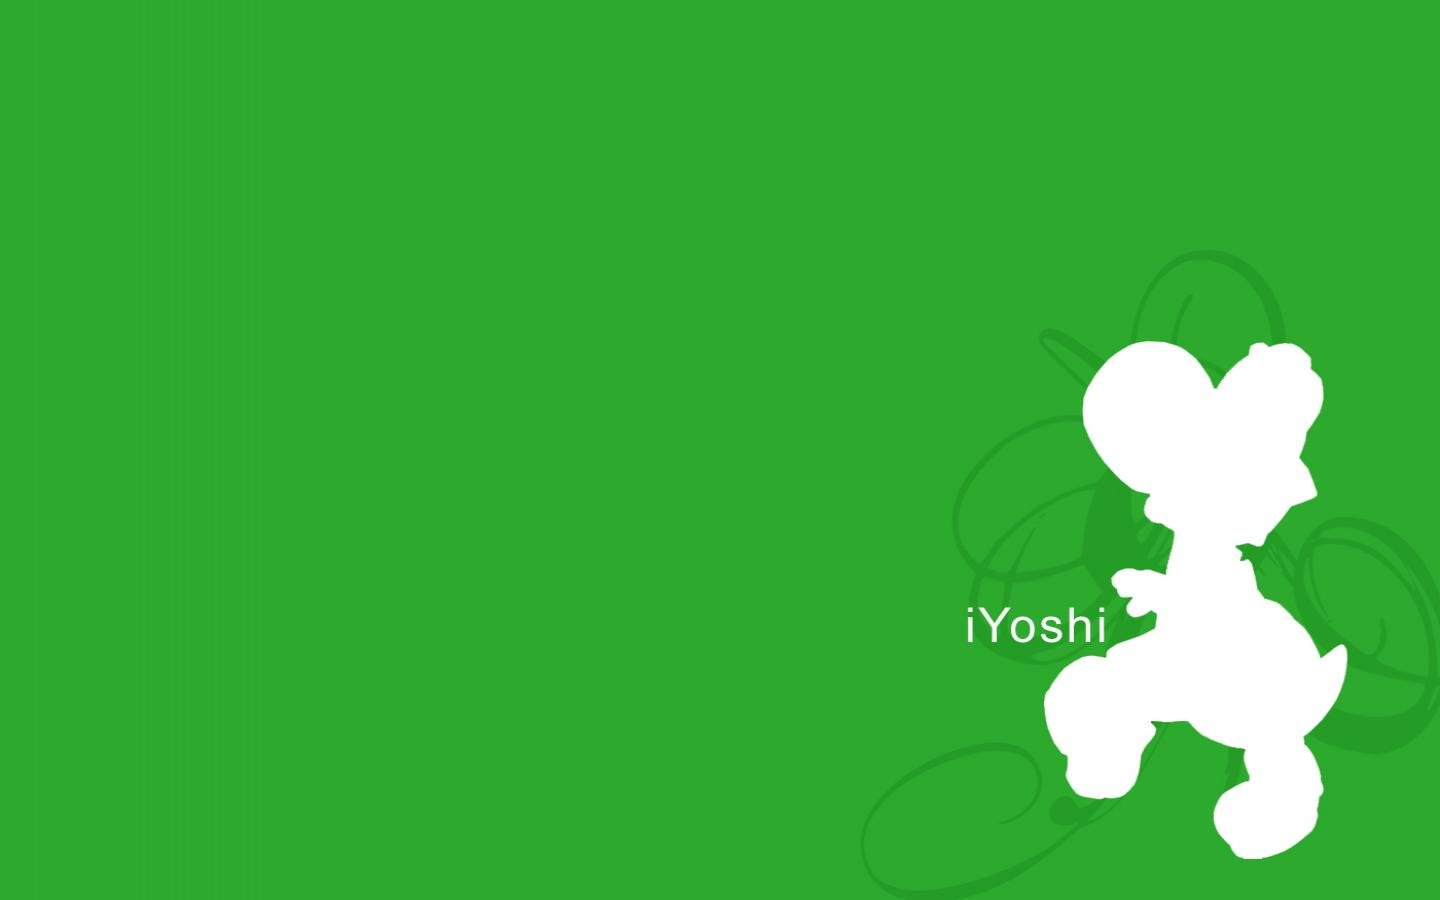 Free Yoshi high quality wallpaper ID:58043 for hd 1440x900 computer